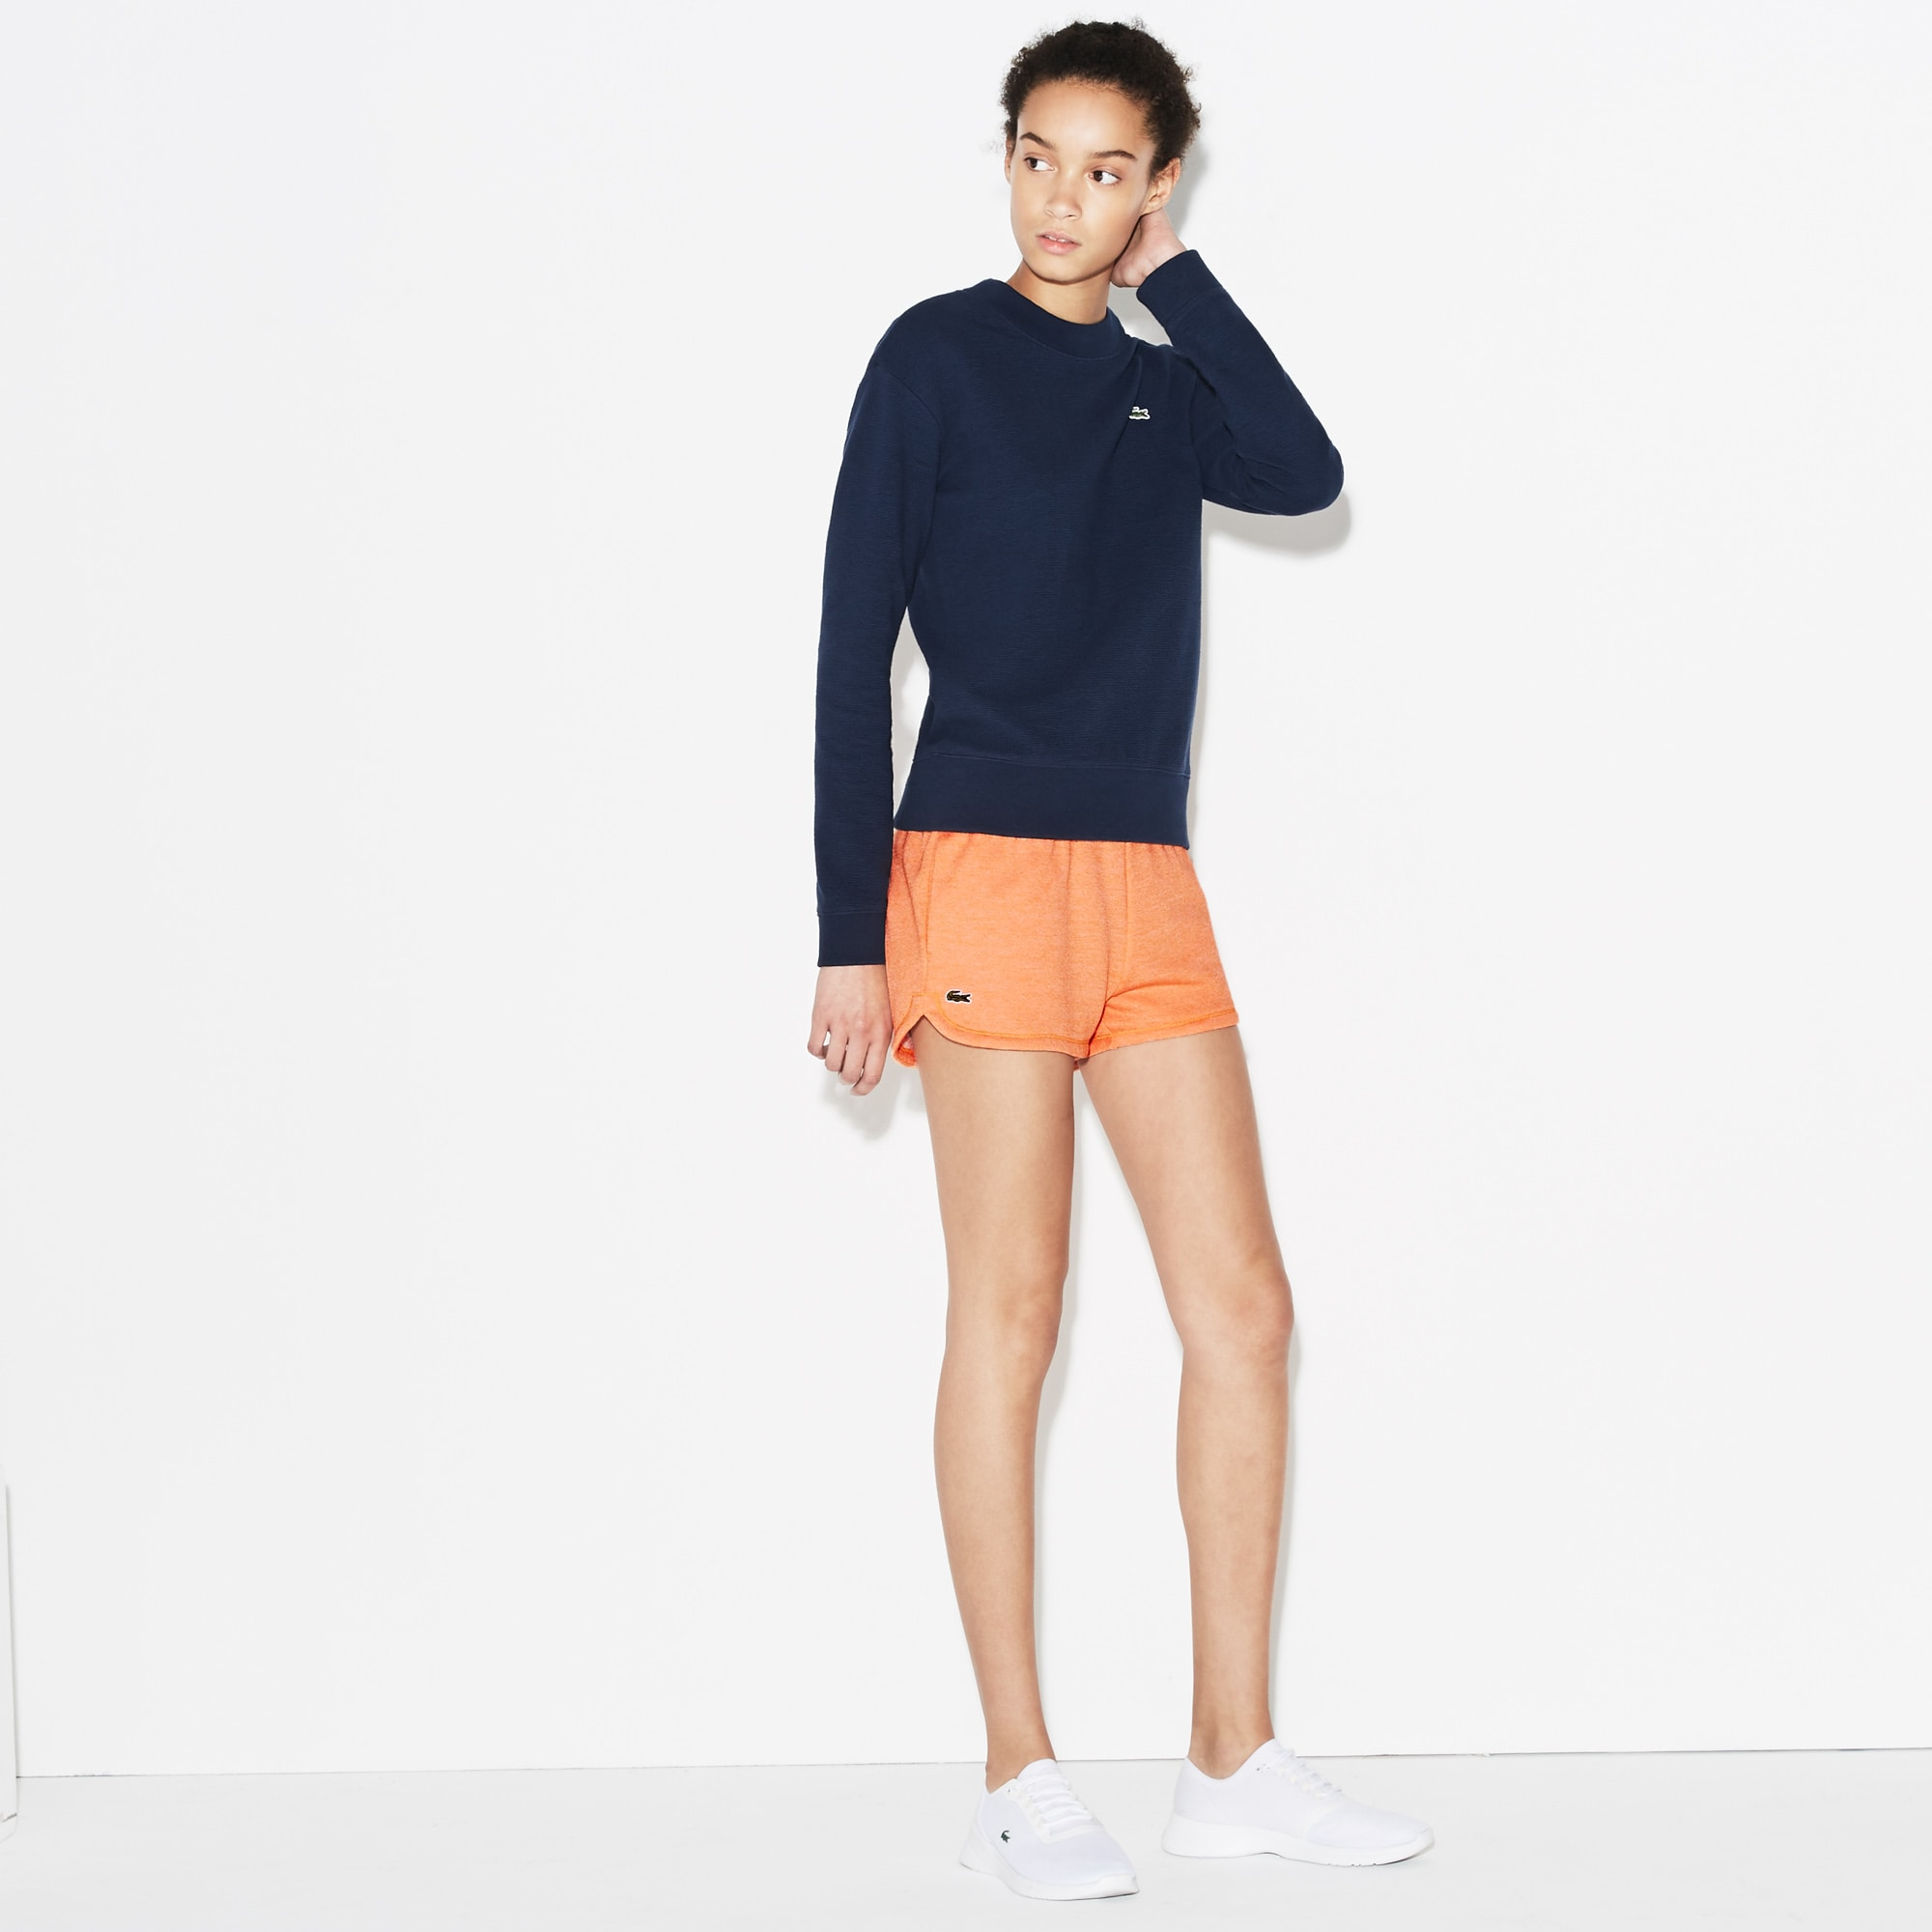 Women's Lacoste SPORT Tennis Fleece Shorts